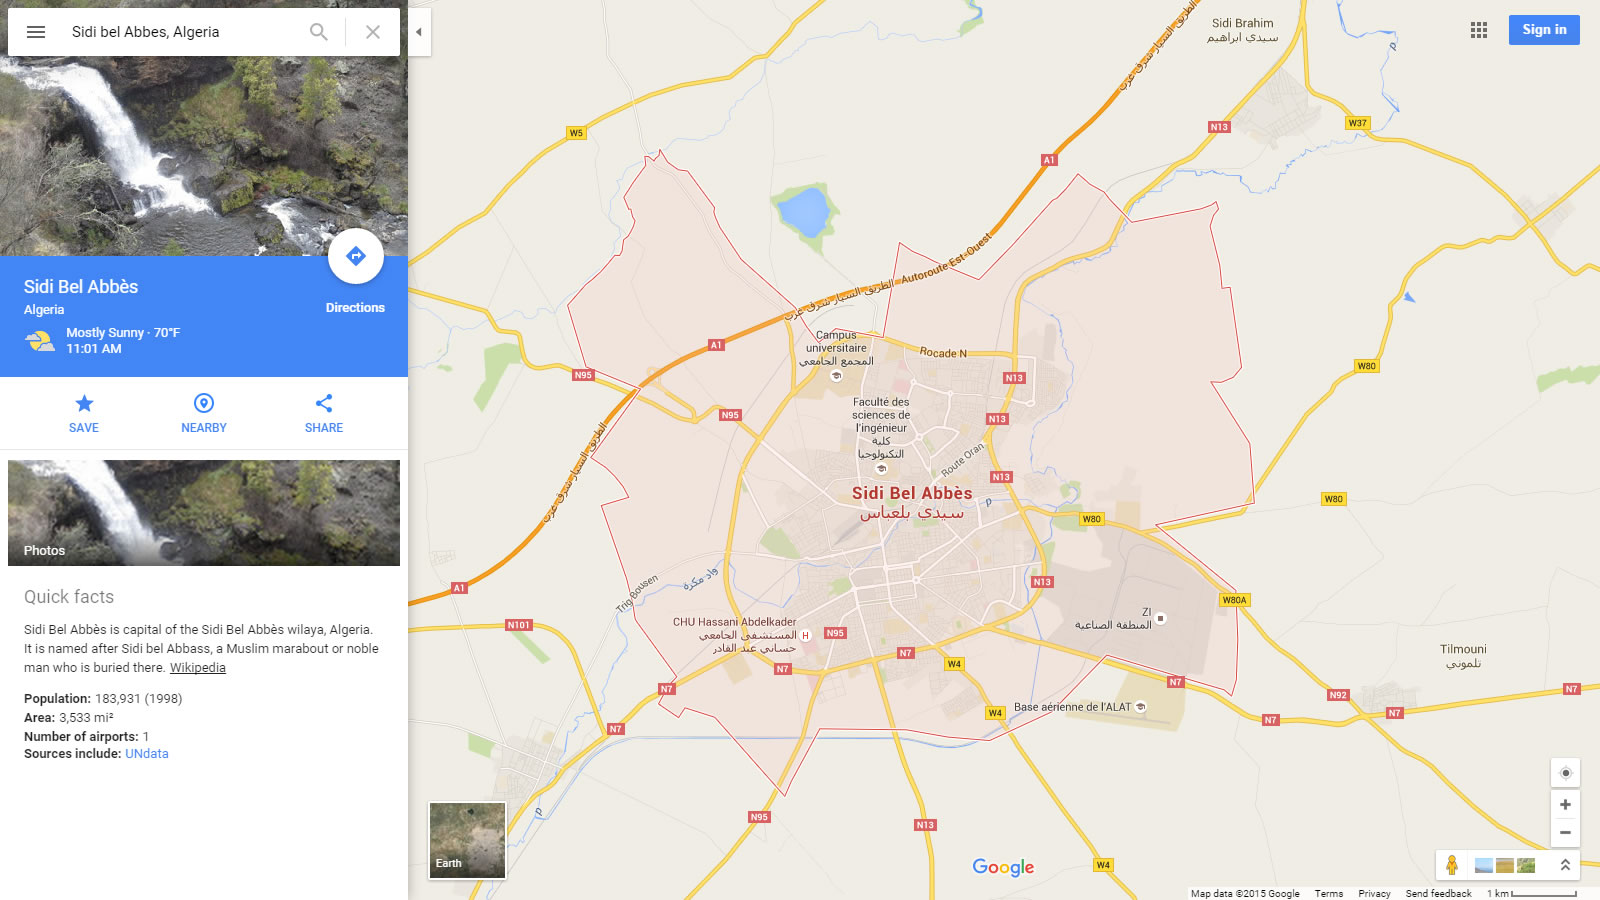 sidi bel abbes map